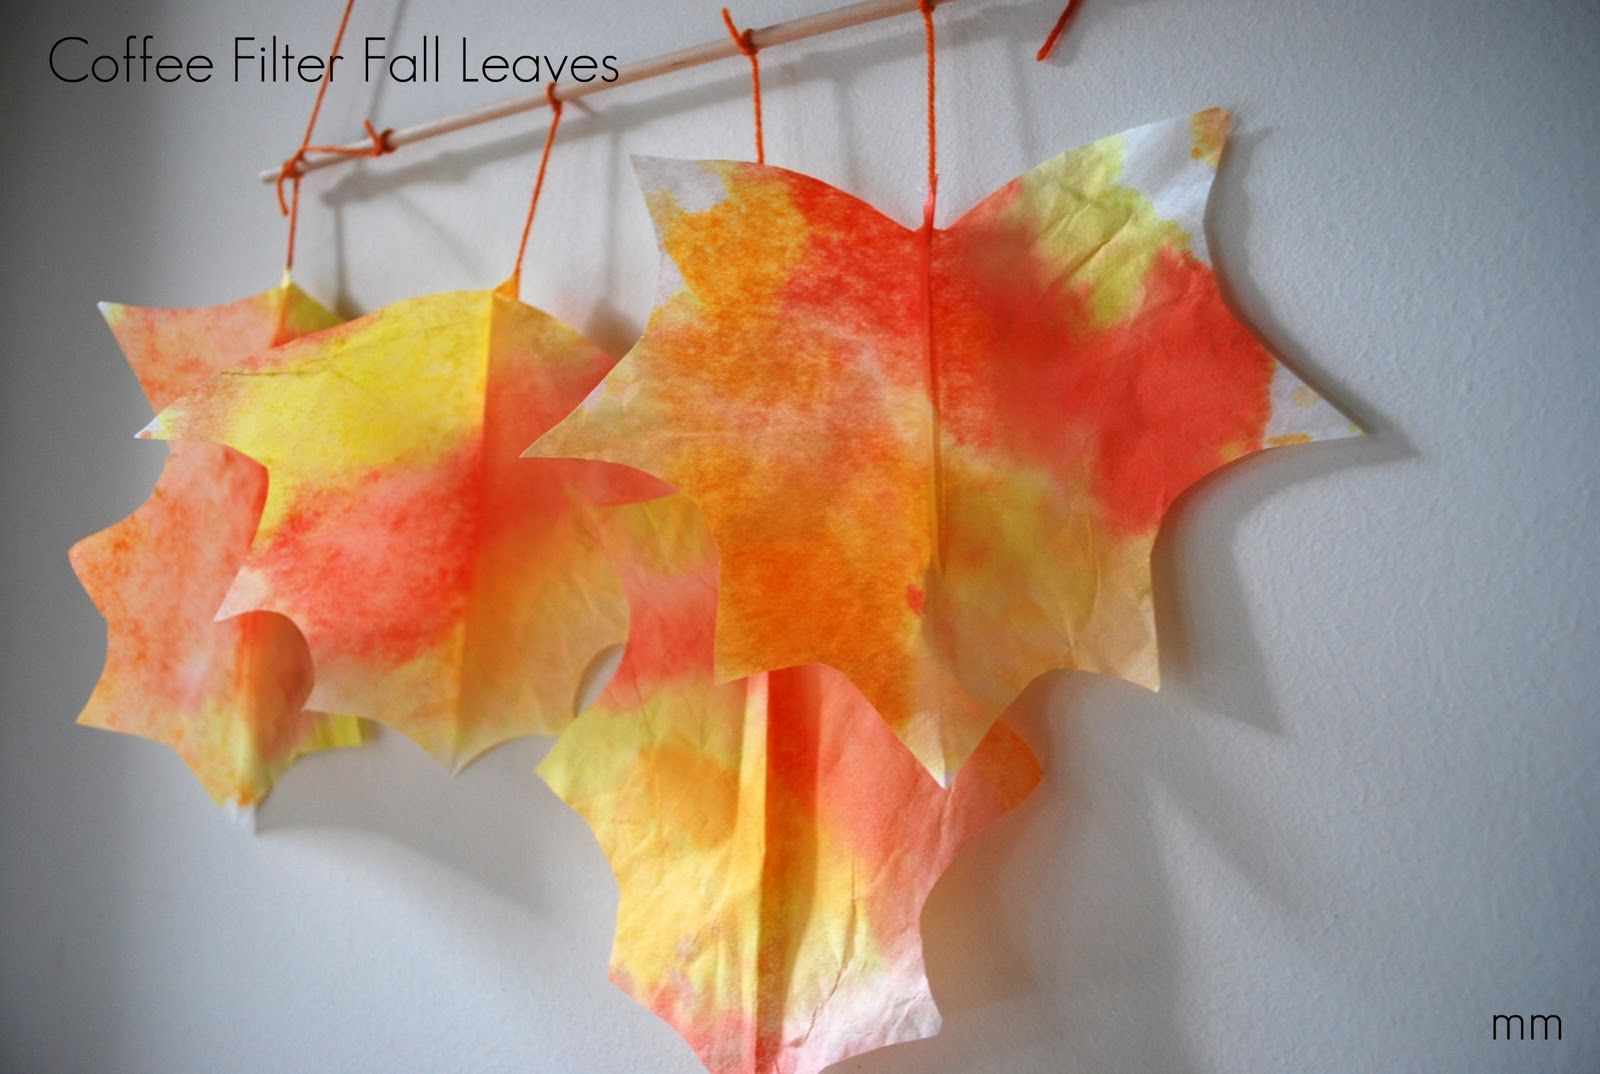 Easy Fall Craft Ideas For Kids Part - 47: MirandaMade: Preschool Project: Coffee Filter Leaves - Could Do Snowflakes  In The Winter: Already Circles U0026 Easier For Little Hands To Cut!